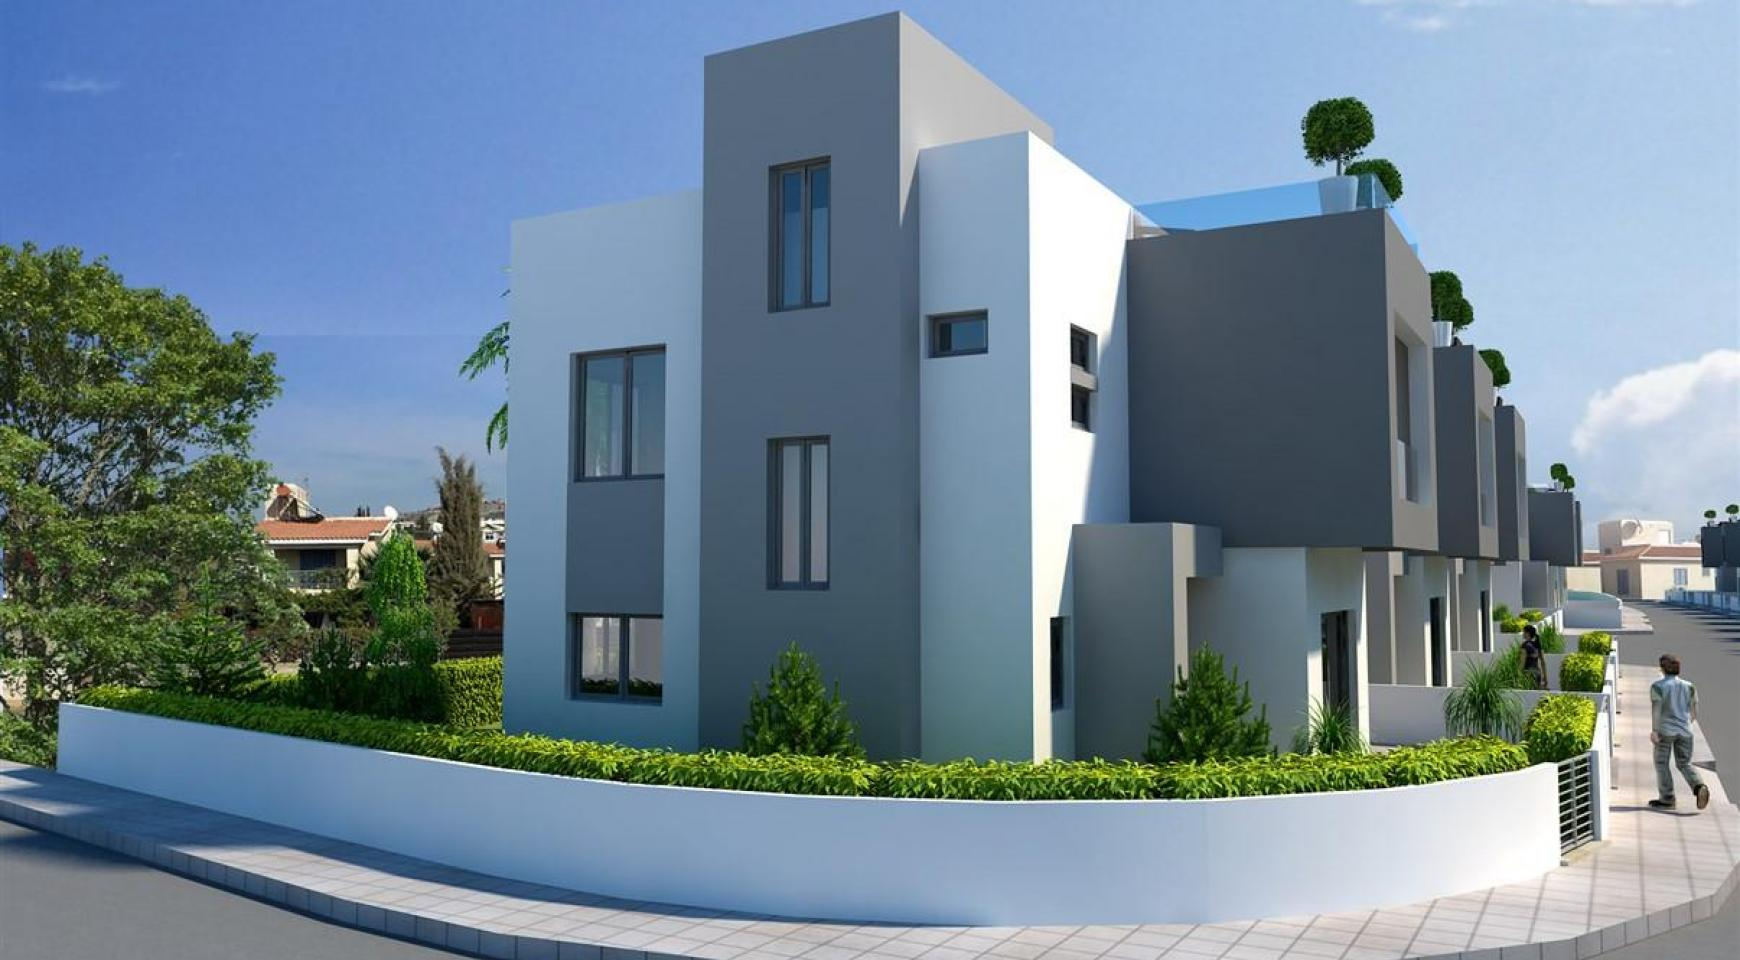 3 Bedroom Villa within a New Project - 37